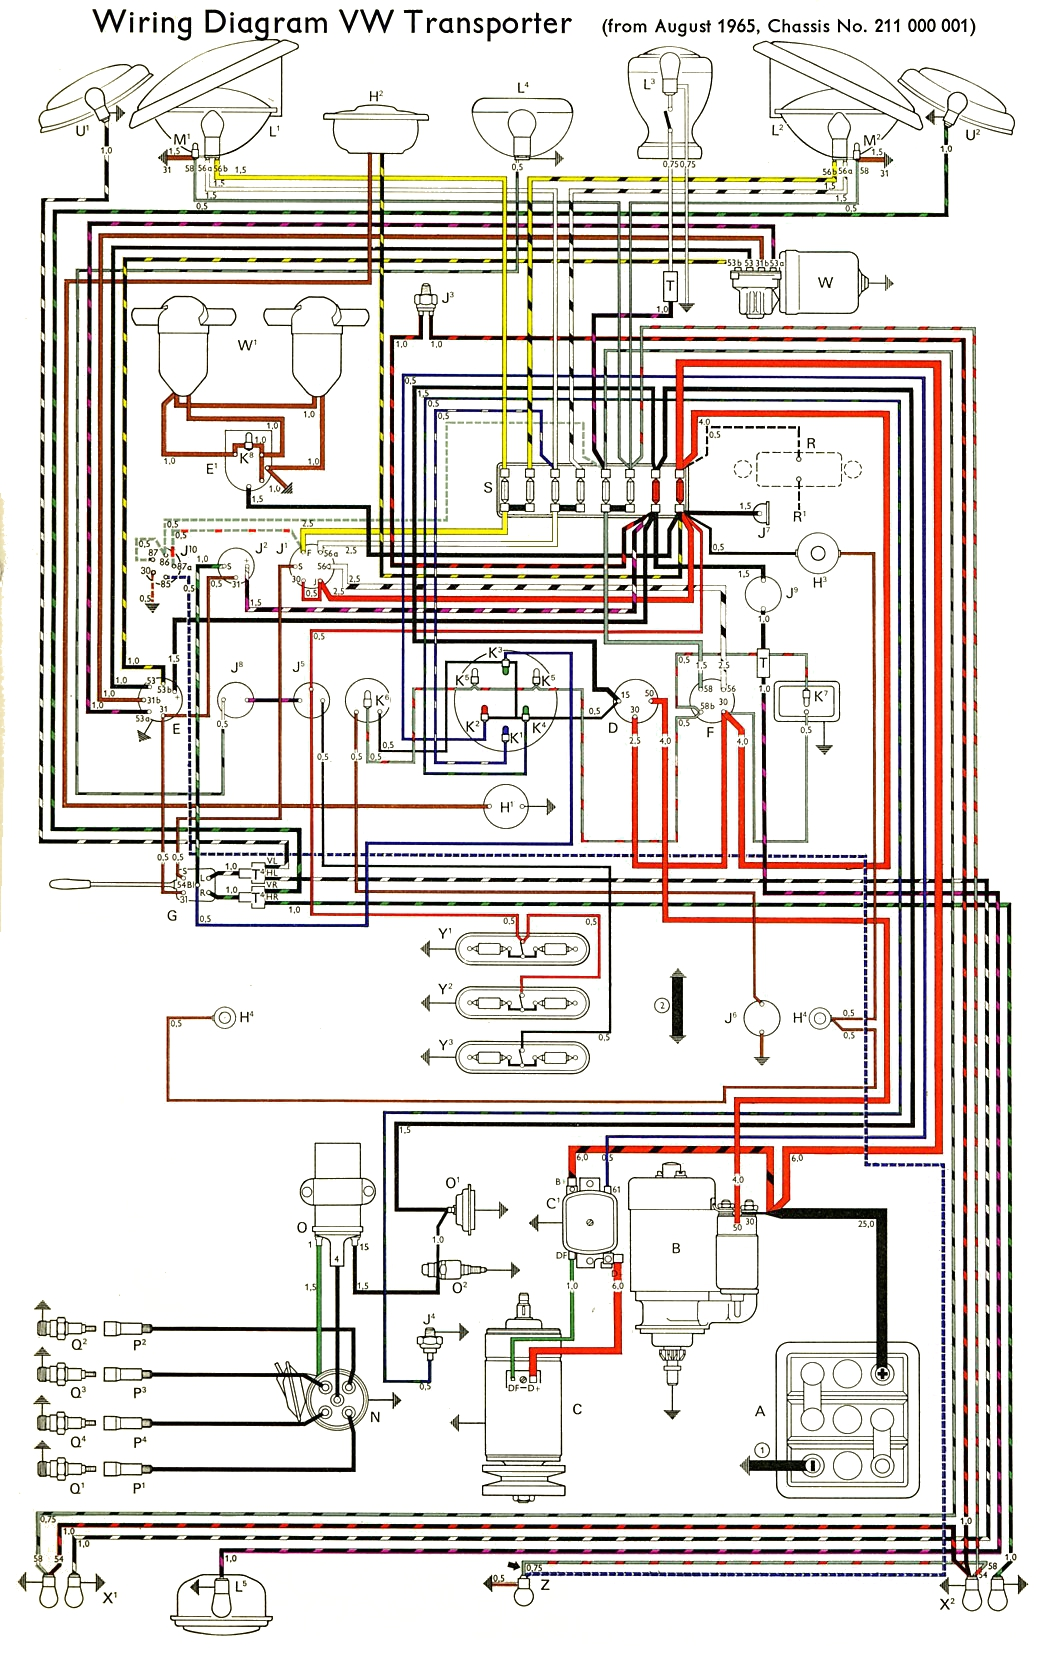 hight resolution of thesamba com type 2 wiring diagrams rh thesamba com 69 vw wiring diagram 56 vw bug